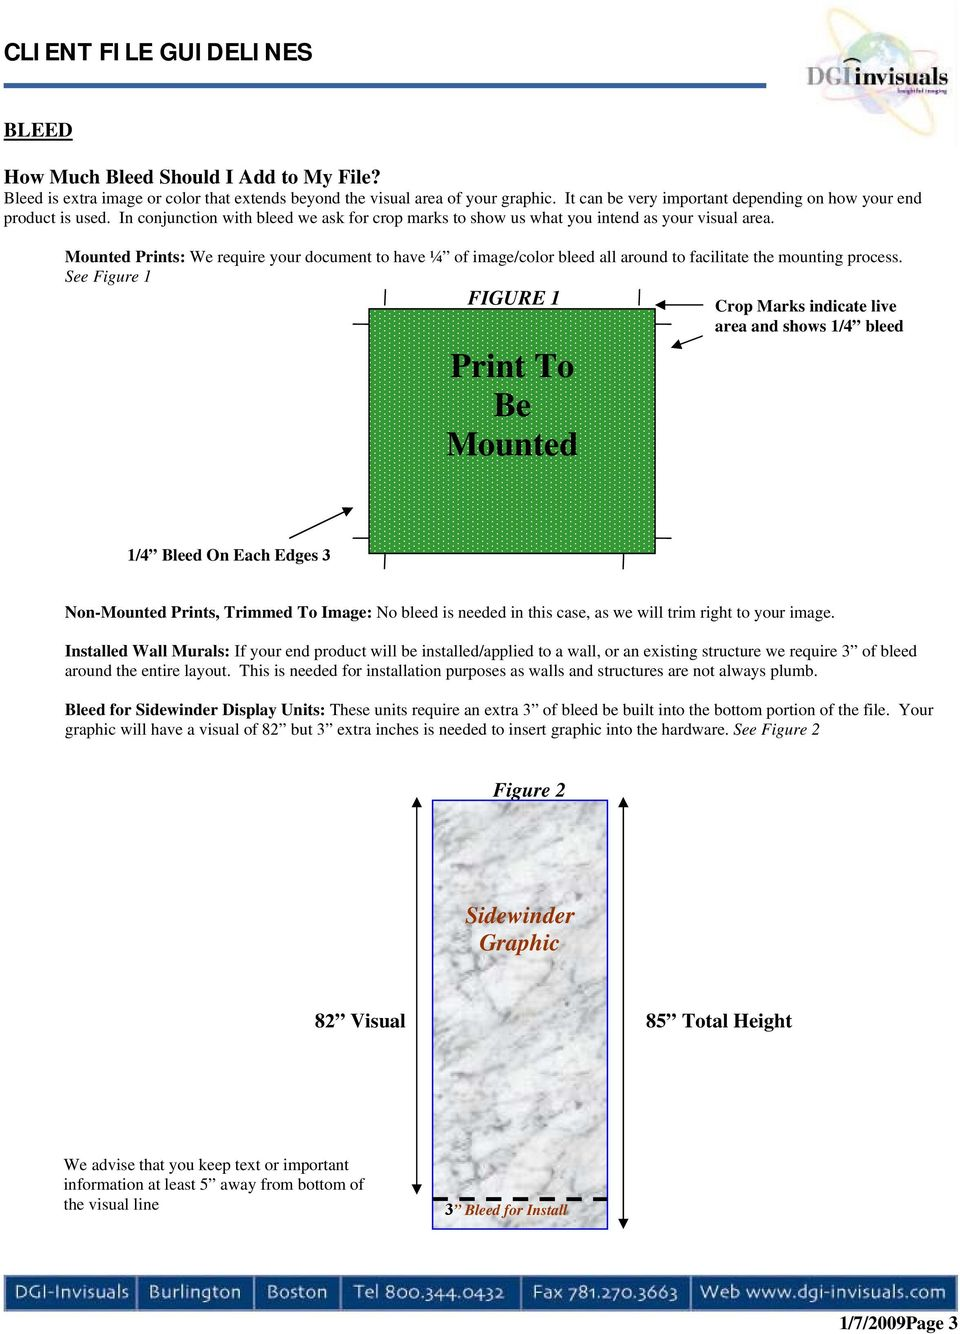 Mounted Prints: We require your document to have ¼ of image/color bleed all around to facilitate the mounting process.